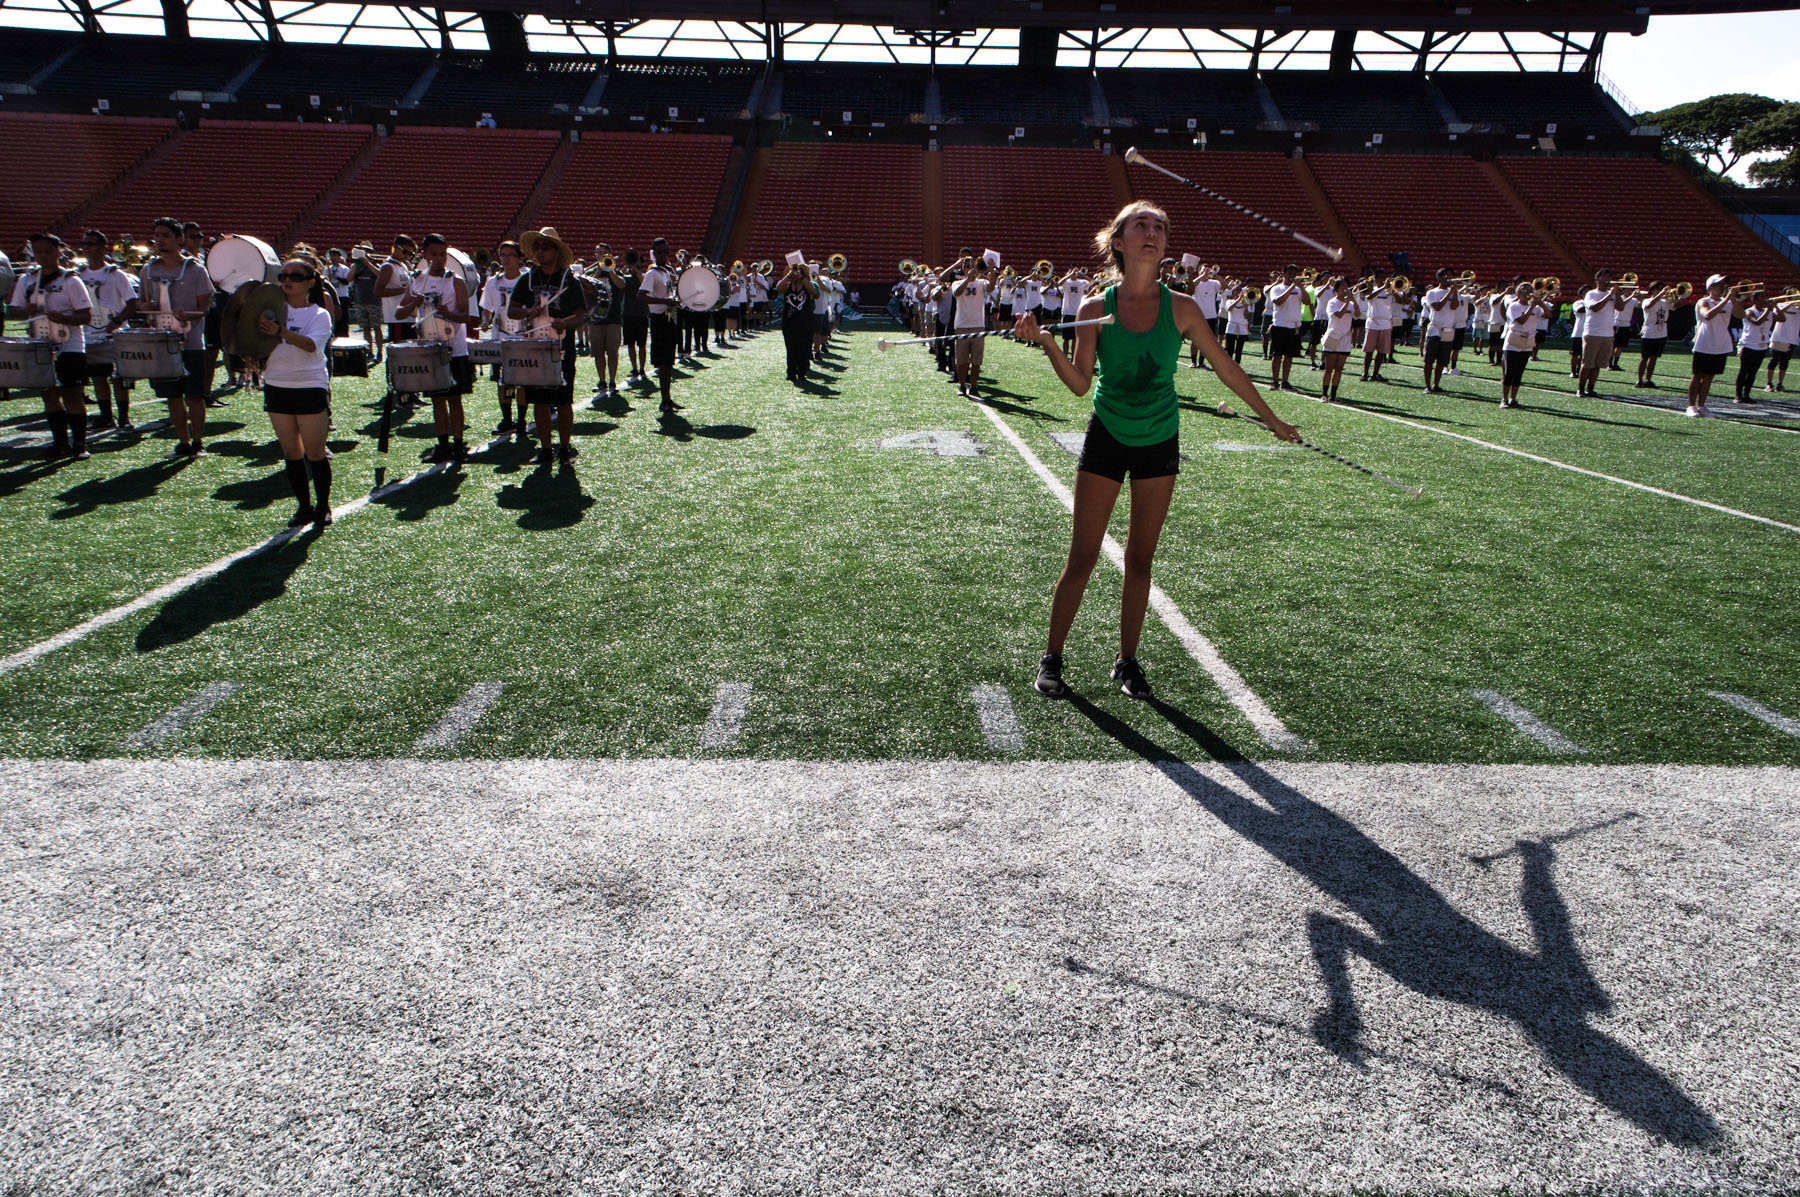 <p>Dooms synchronizes her performance with the marching band during the gameday practice. &#8220;Everyone wants to see the twirler, not Emily.&#8221;</p>